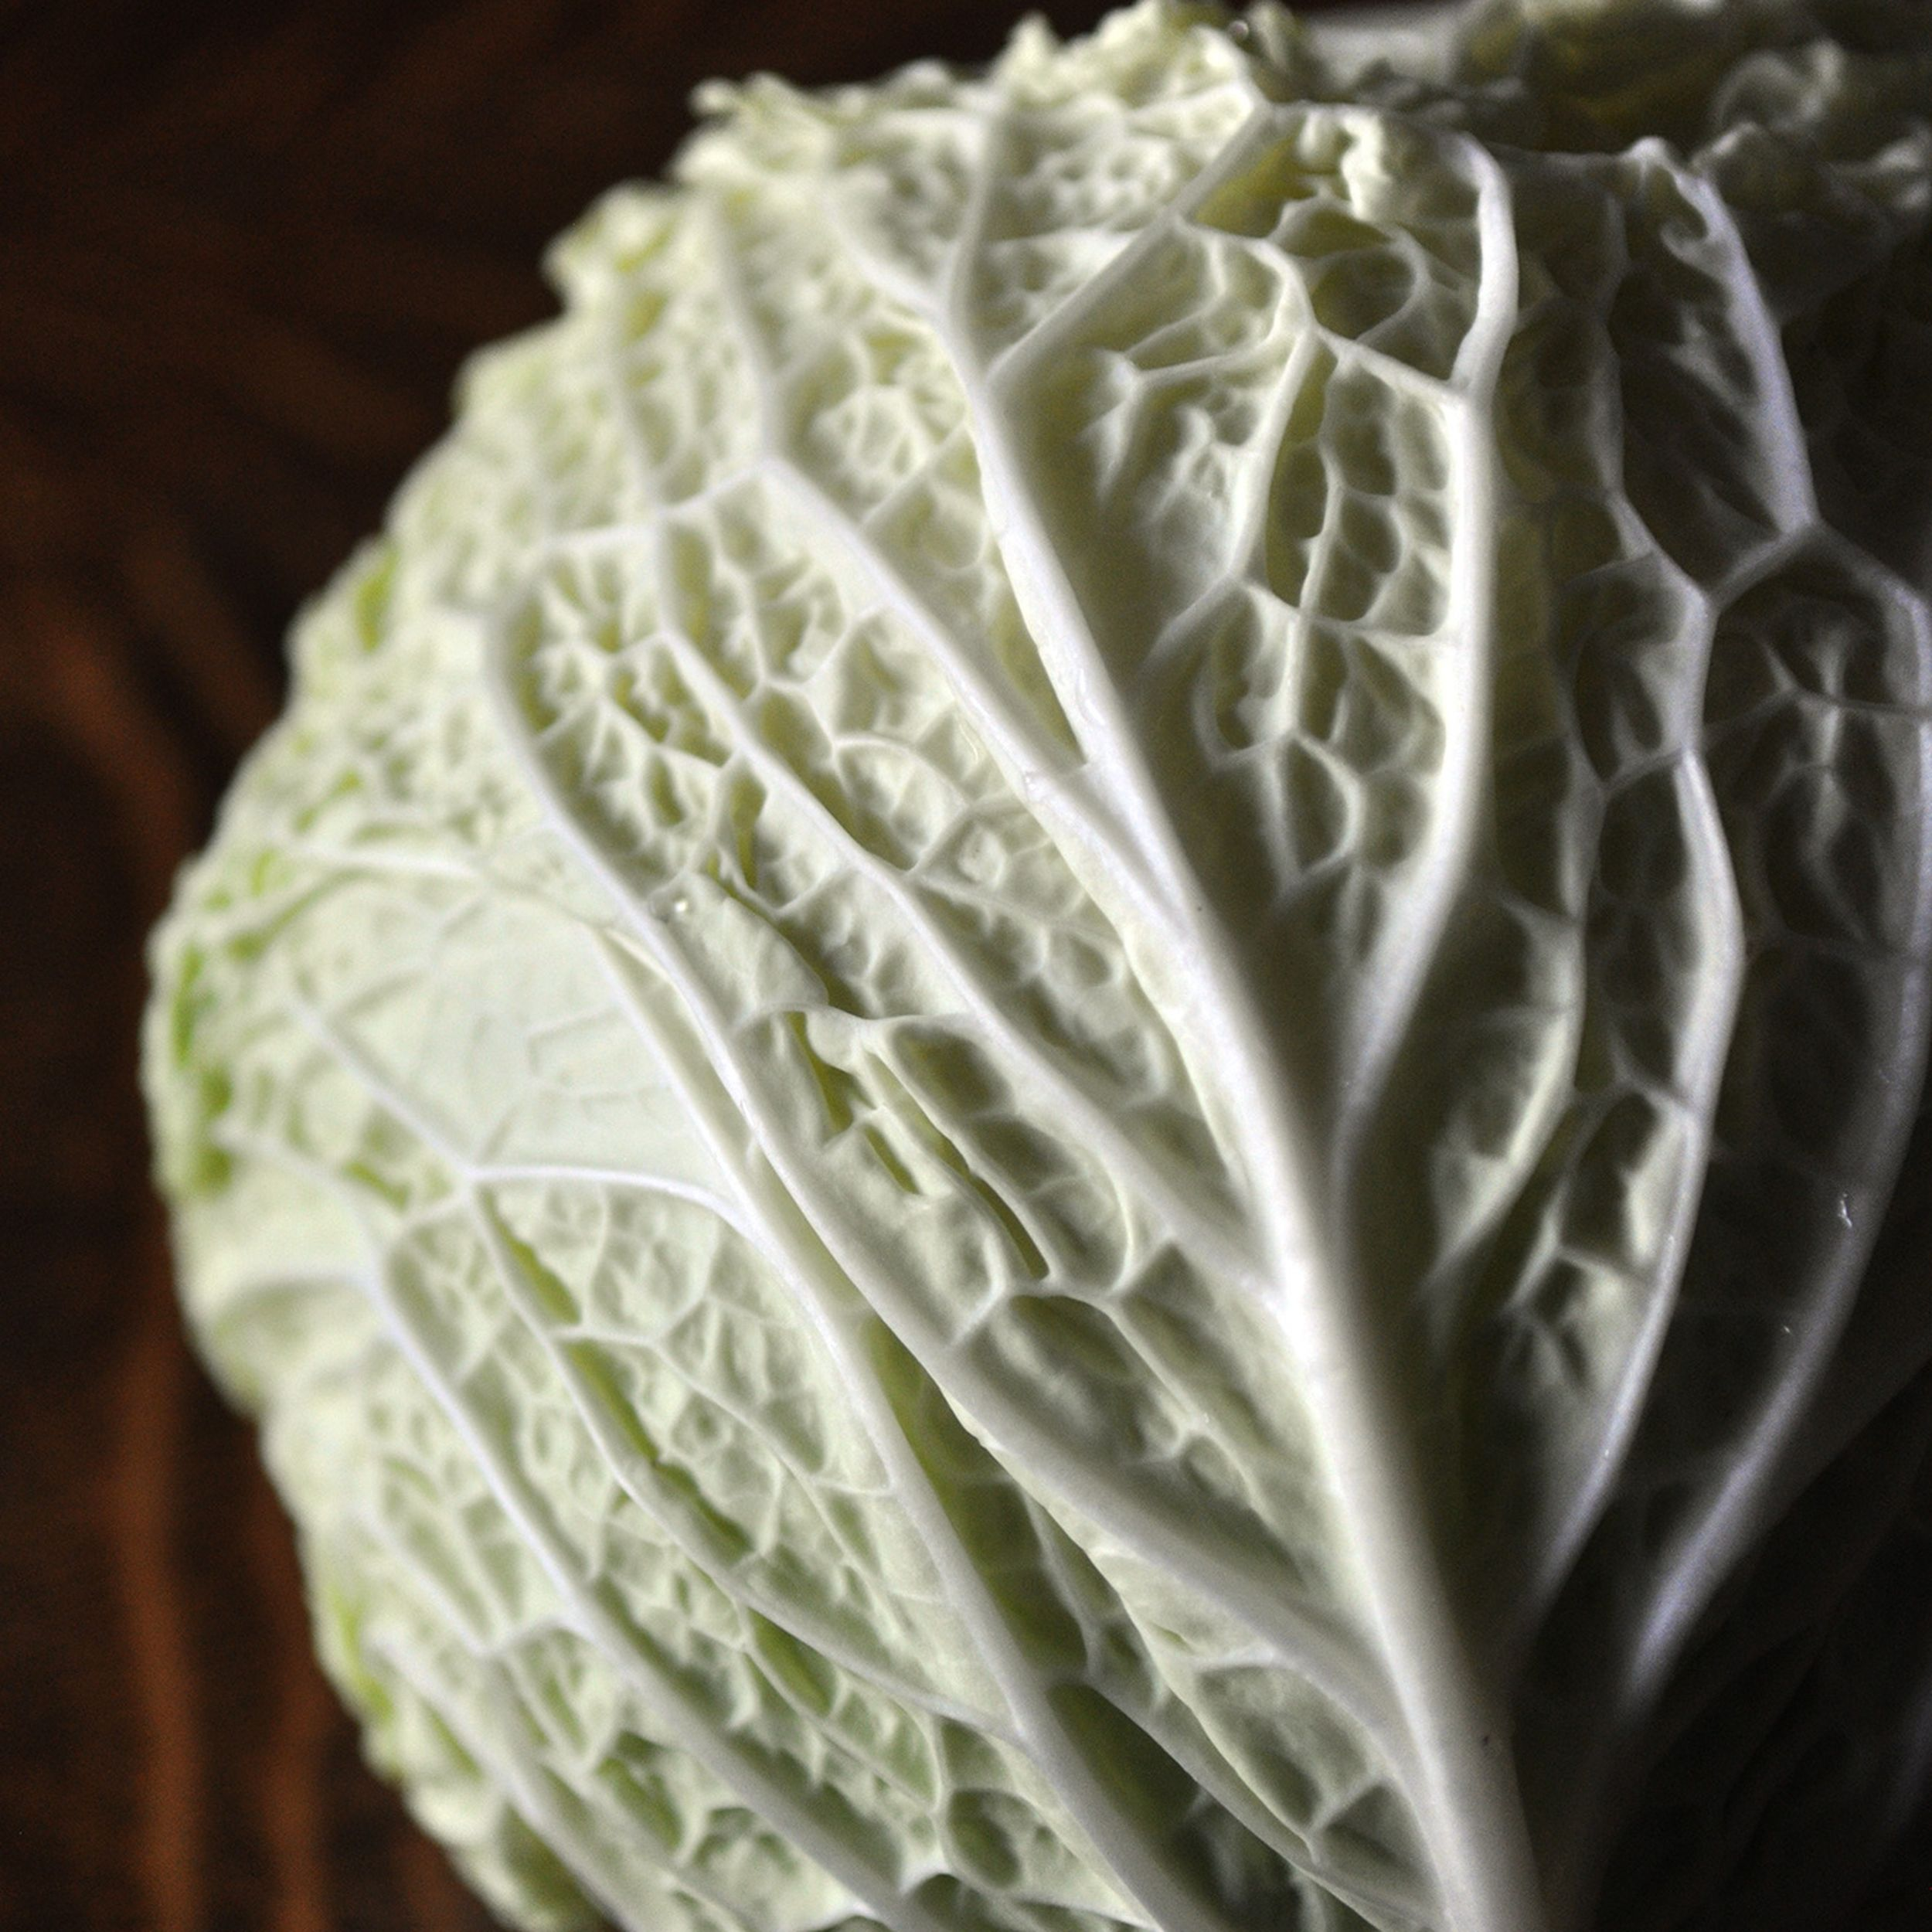 Fifty Shades Of Cabbage A Versatile St Paddy S Favorite The Spokesman Review